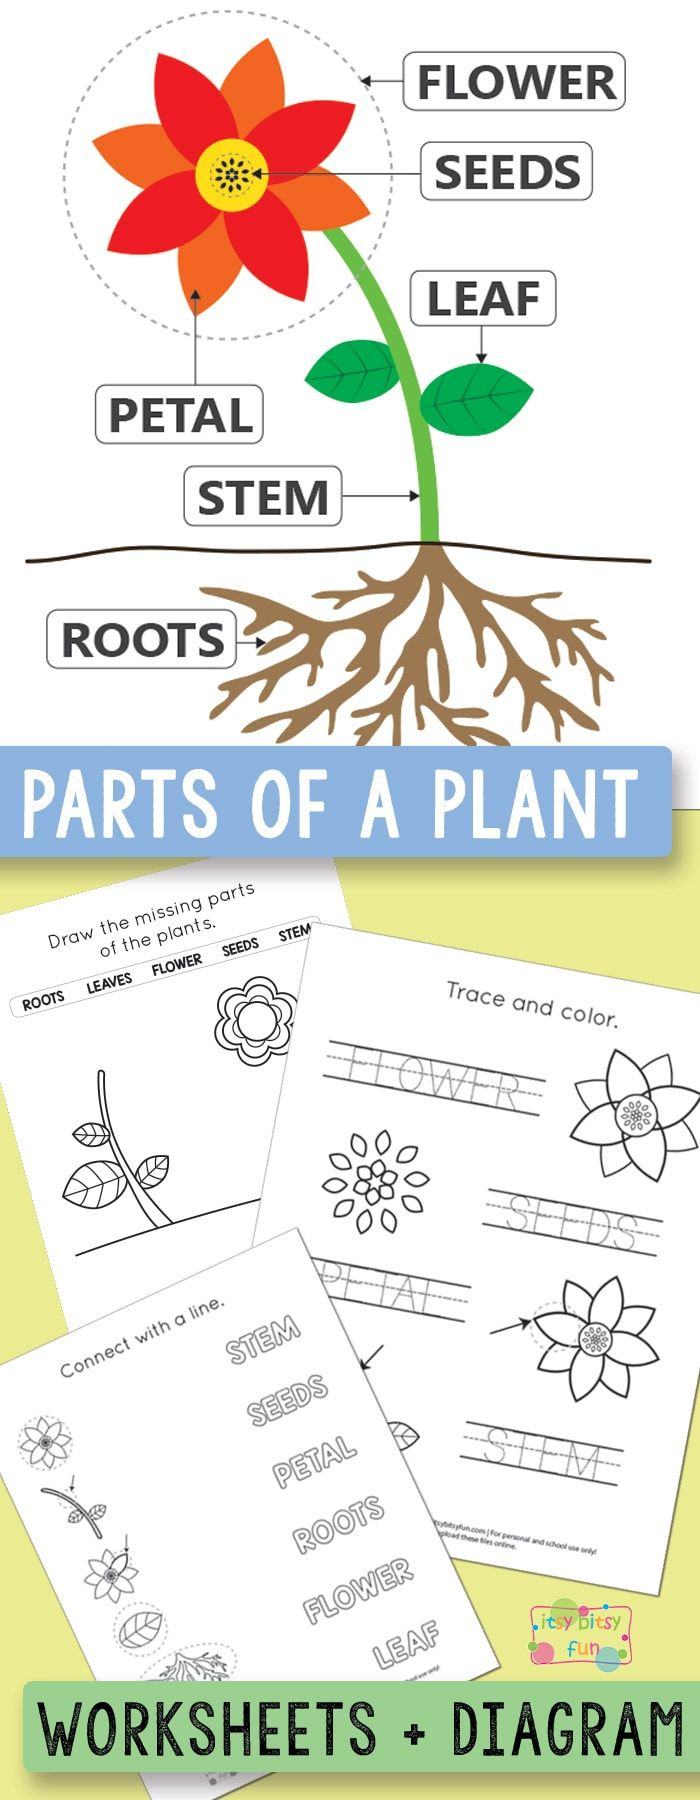 small resolution of Free Printable Parts of a Plant Worksheets - itsybitsyfun.com   Plants  worksheets